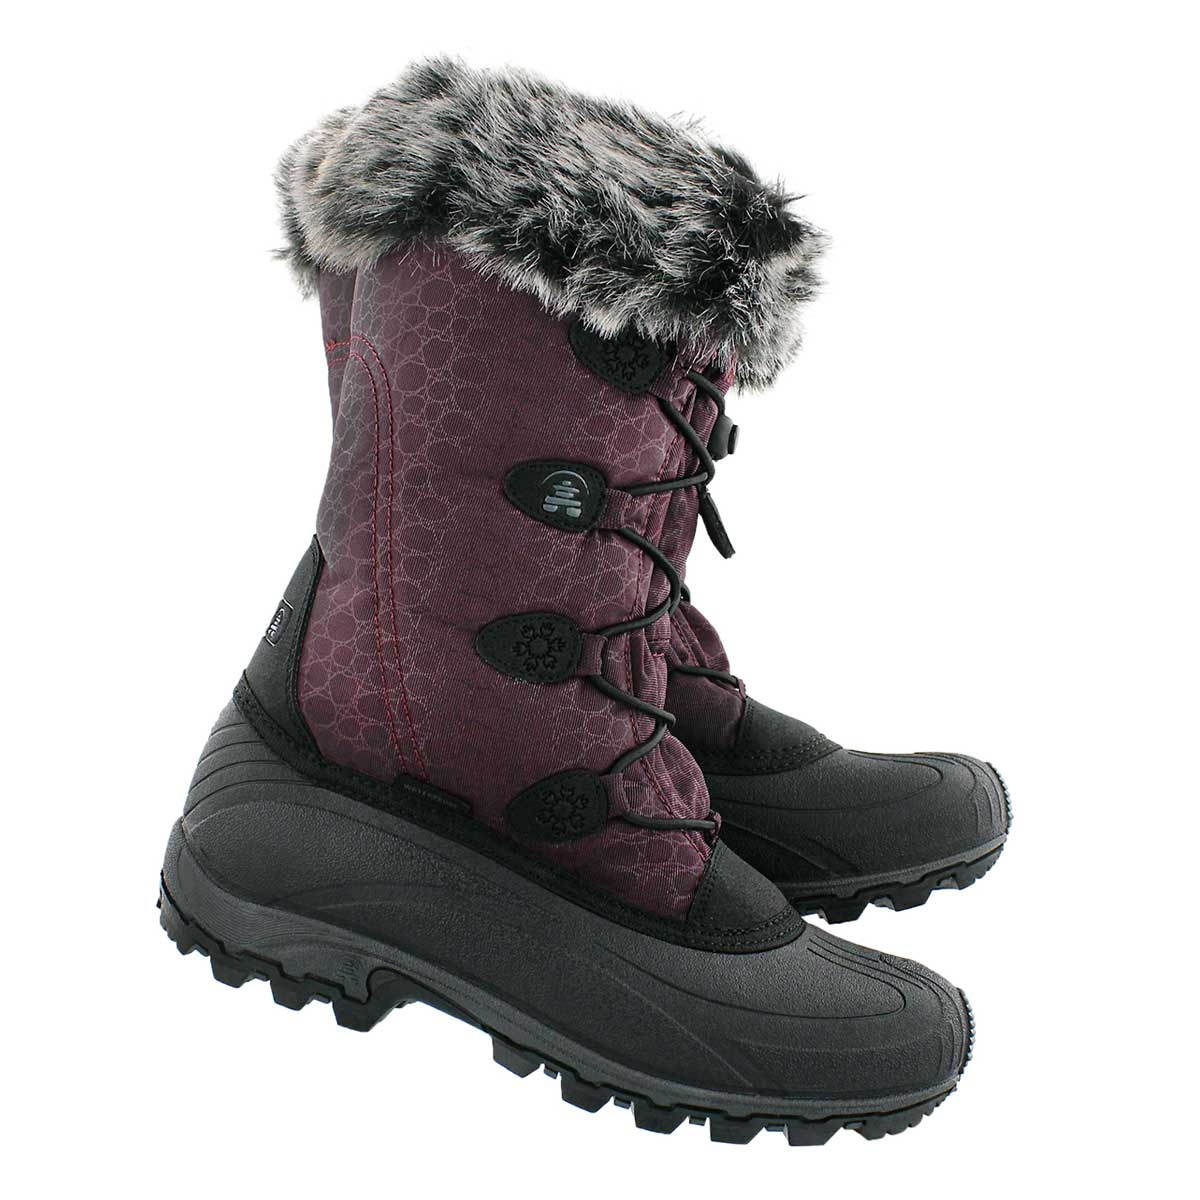 Lds Momentum burgundy winter boot